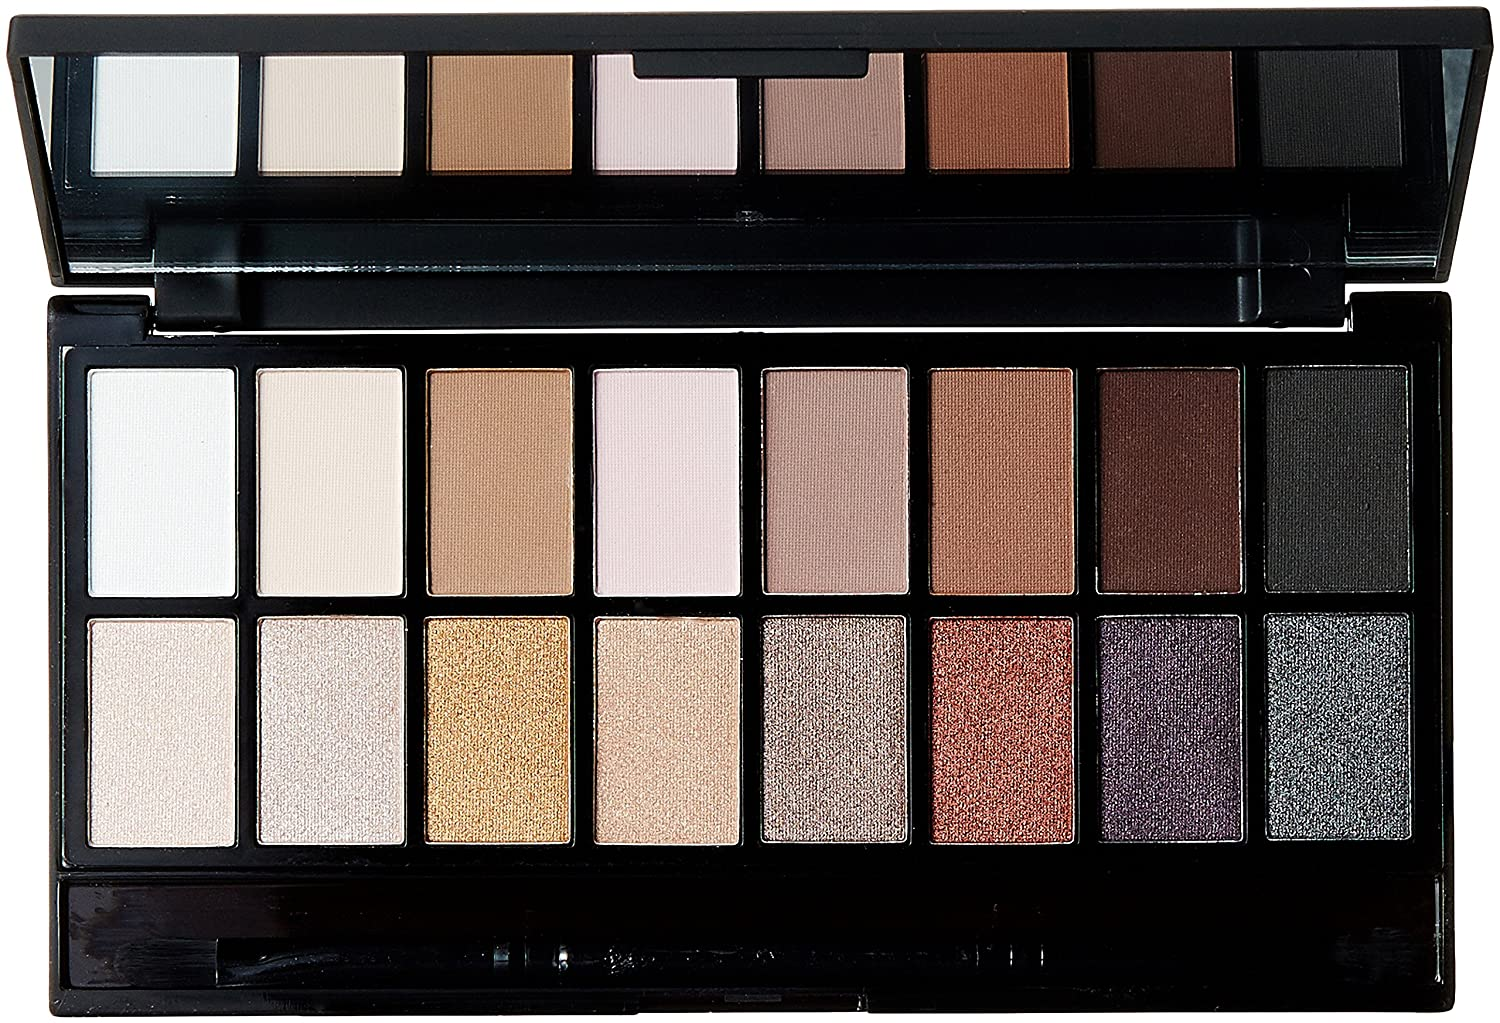 Buy Makeup Revolution London Salvation Palette, Iconic Pro, 16g Online at Low Prices in India - Amazon.in